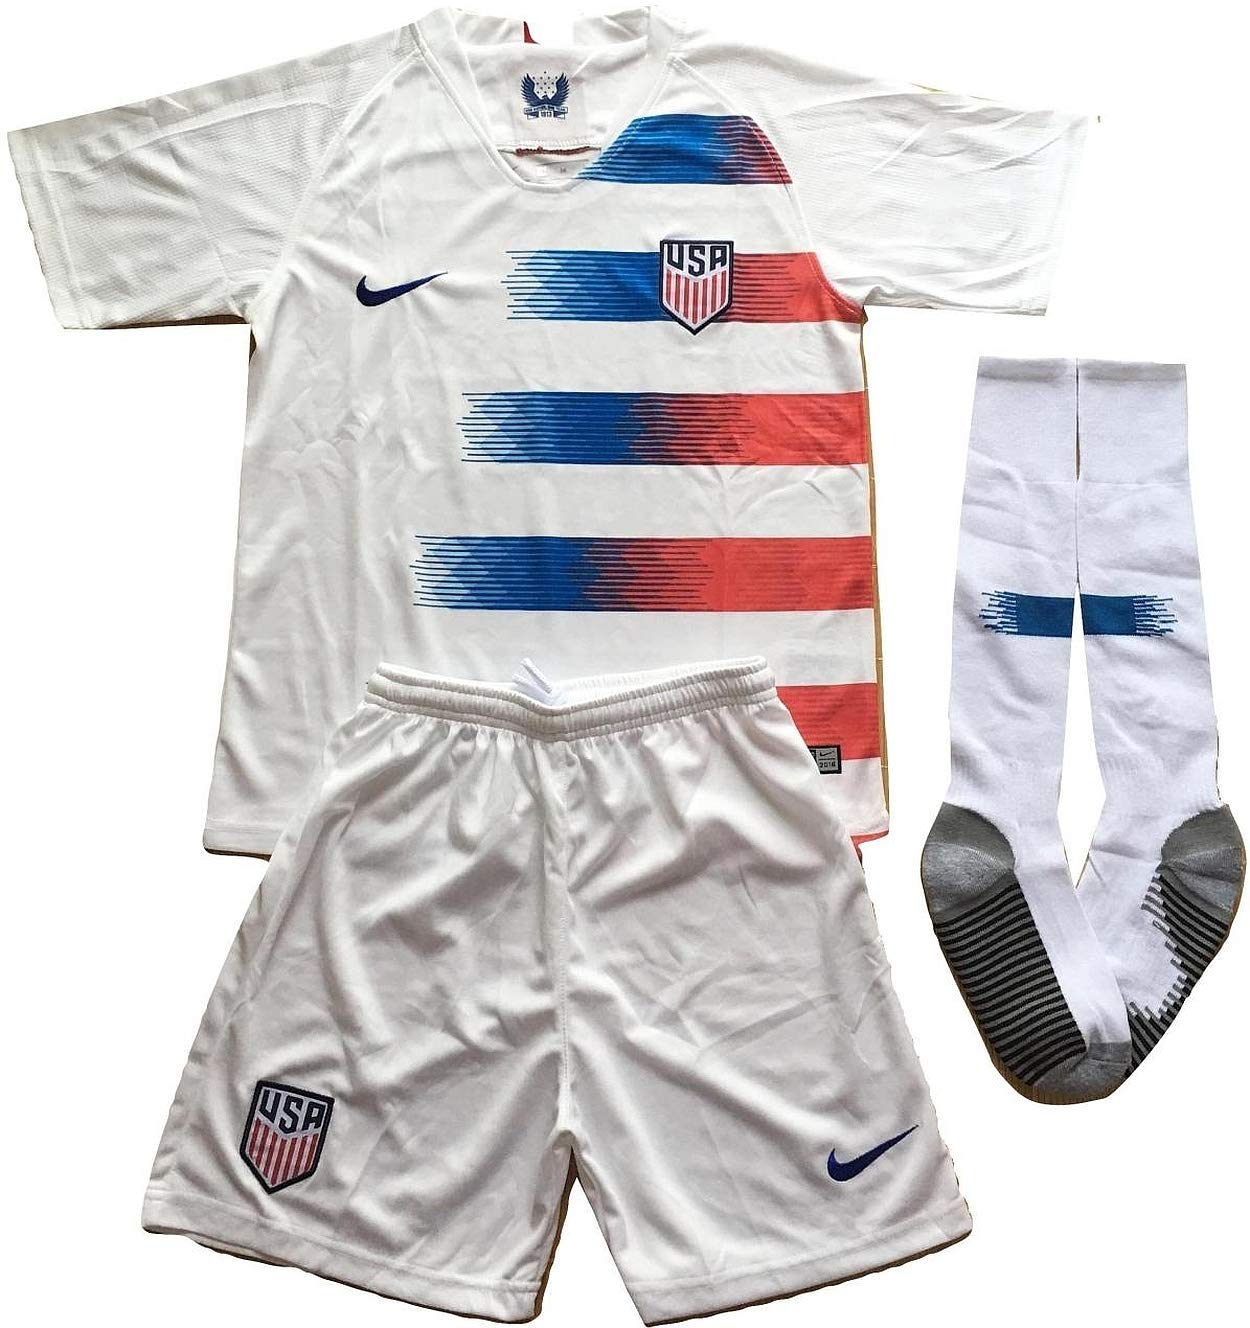 MilkaGGT USA National Team 2018-2019 Youths Home Soccer Jersey & Socks Set (7-8 Years Old)